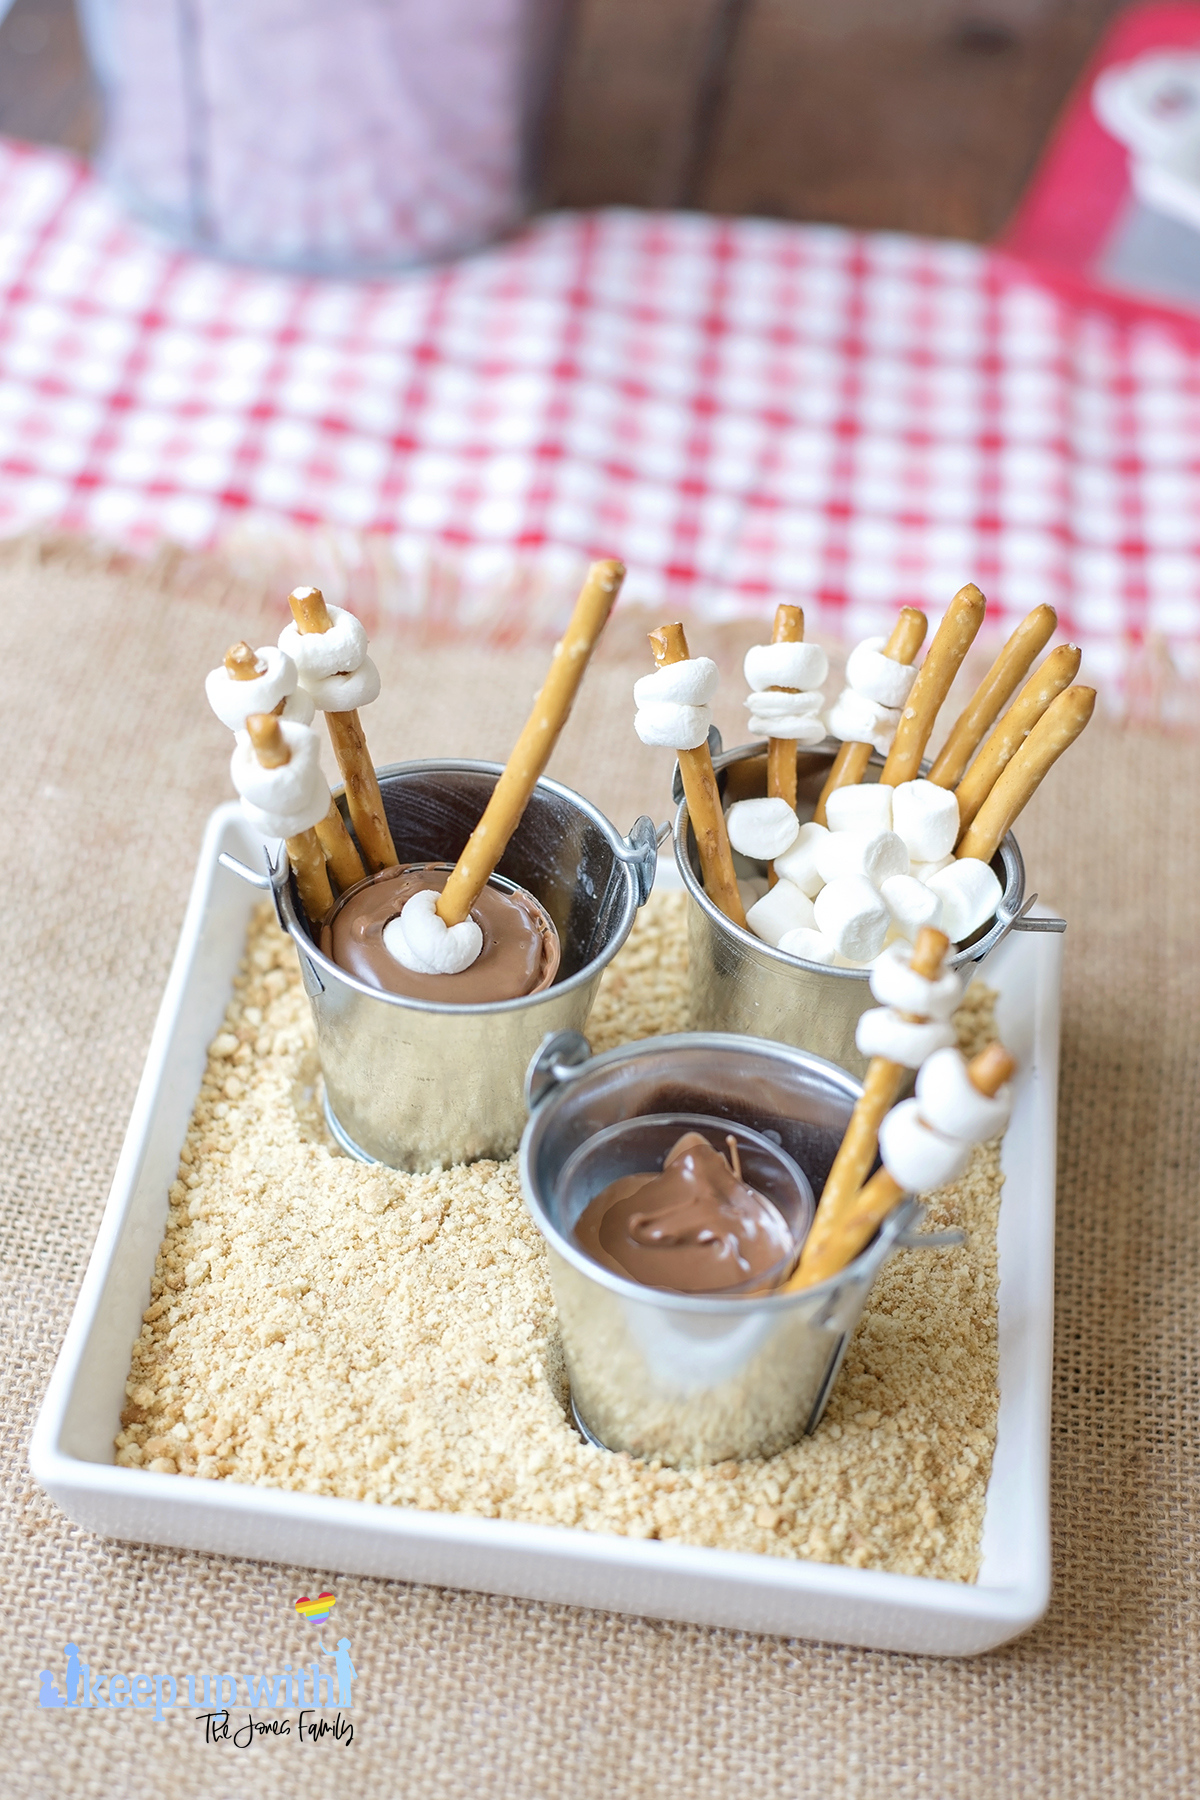 Image shows Mini Campfire Chocolate Fondue Buckets. Miniature galvanised steel buckets containing pretzel sticks with small marshmallows place on the ends like roasting marshmallow sticks, and a small plastic shot glass filled with melted chocolate. The buckets are placed on a white square plate filled with crushed digestive biscuit crumbs to look like sand. Image by Keep Up With The Jones Family.